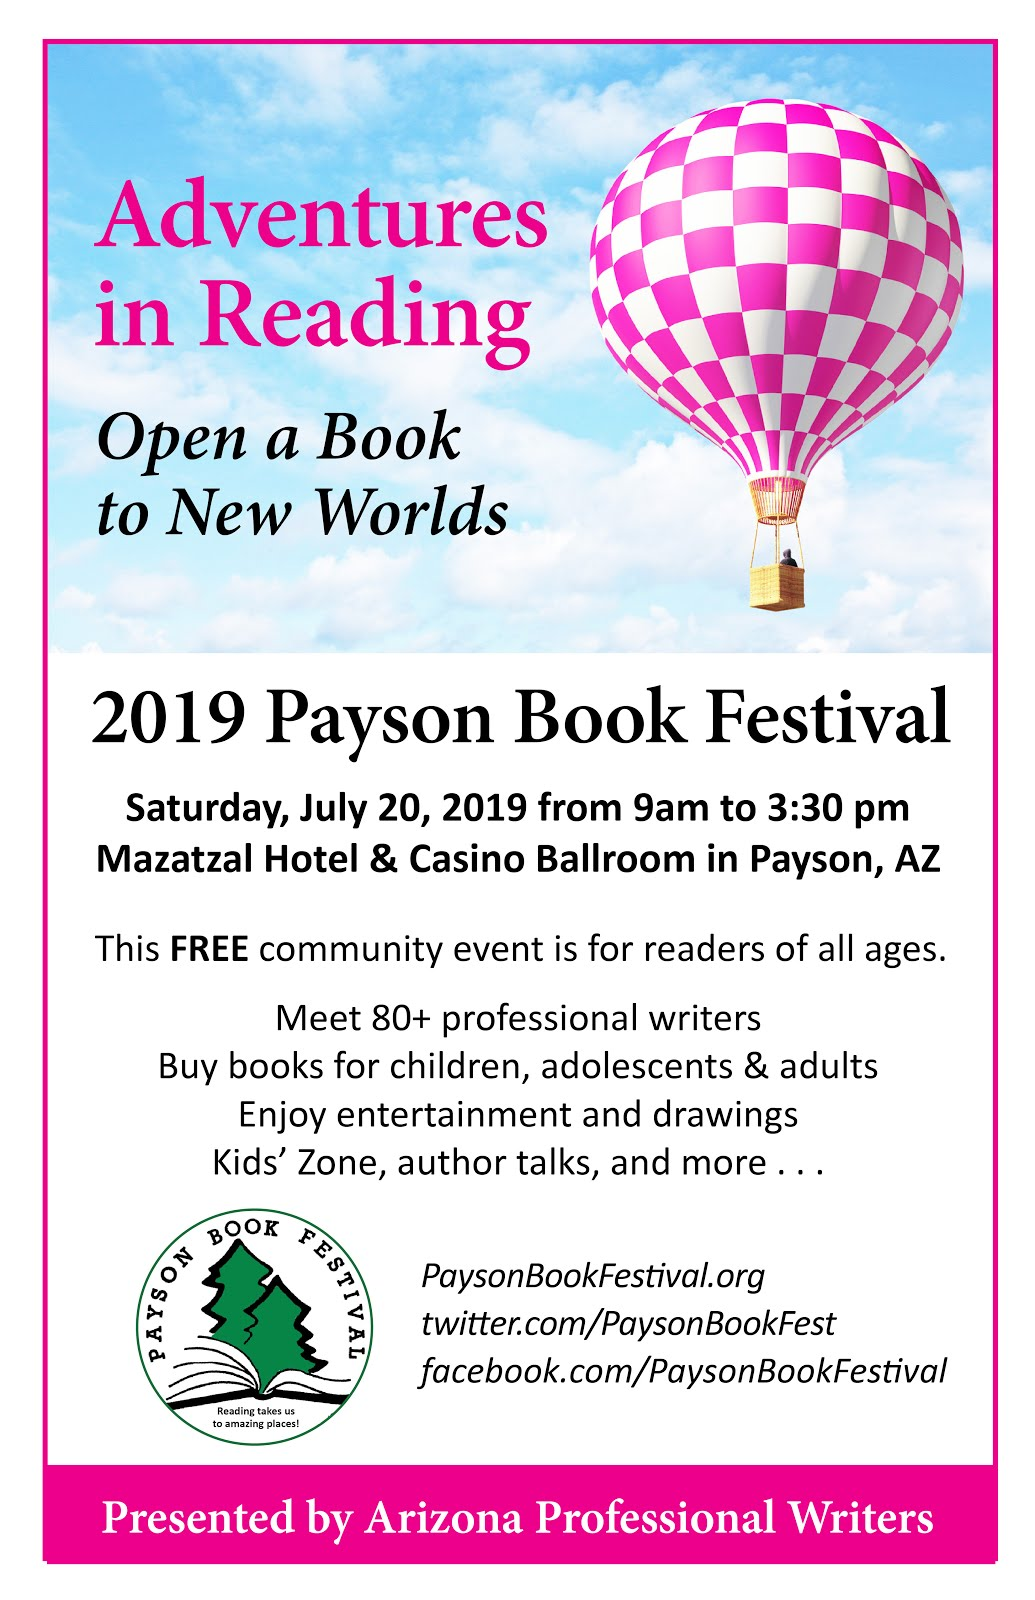 I'll be at the Payson Book Festival signing